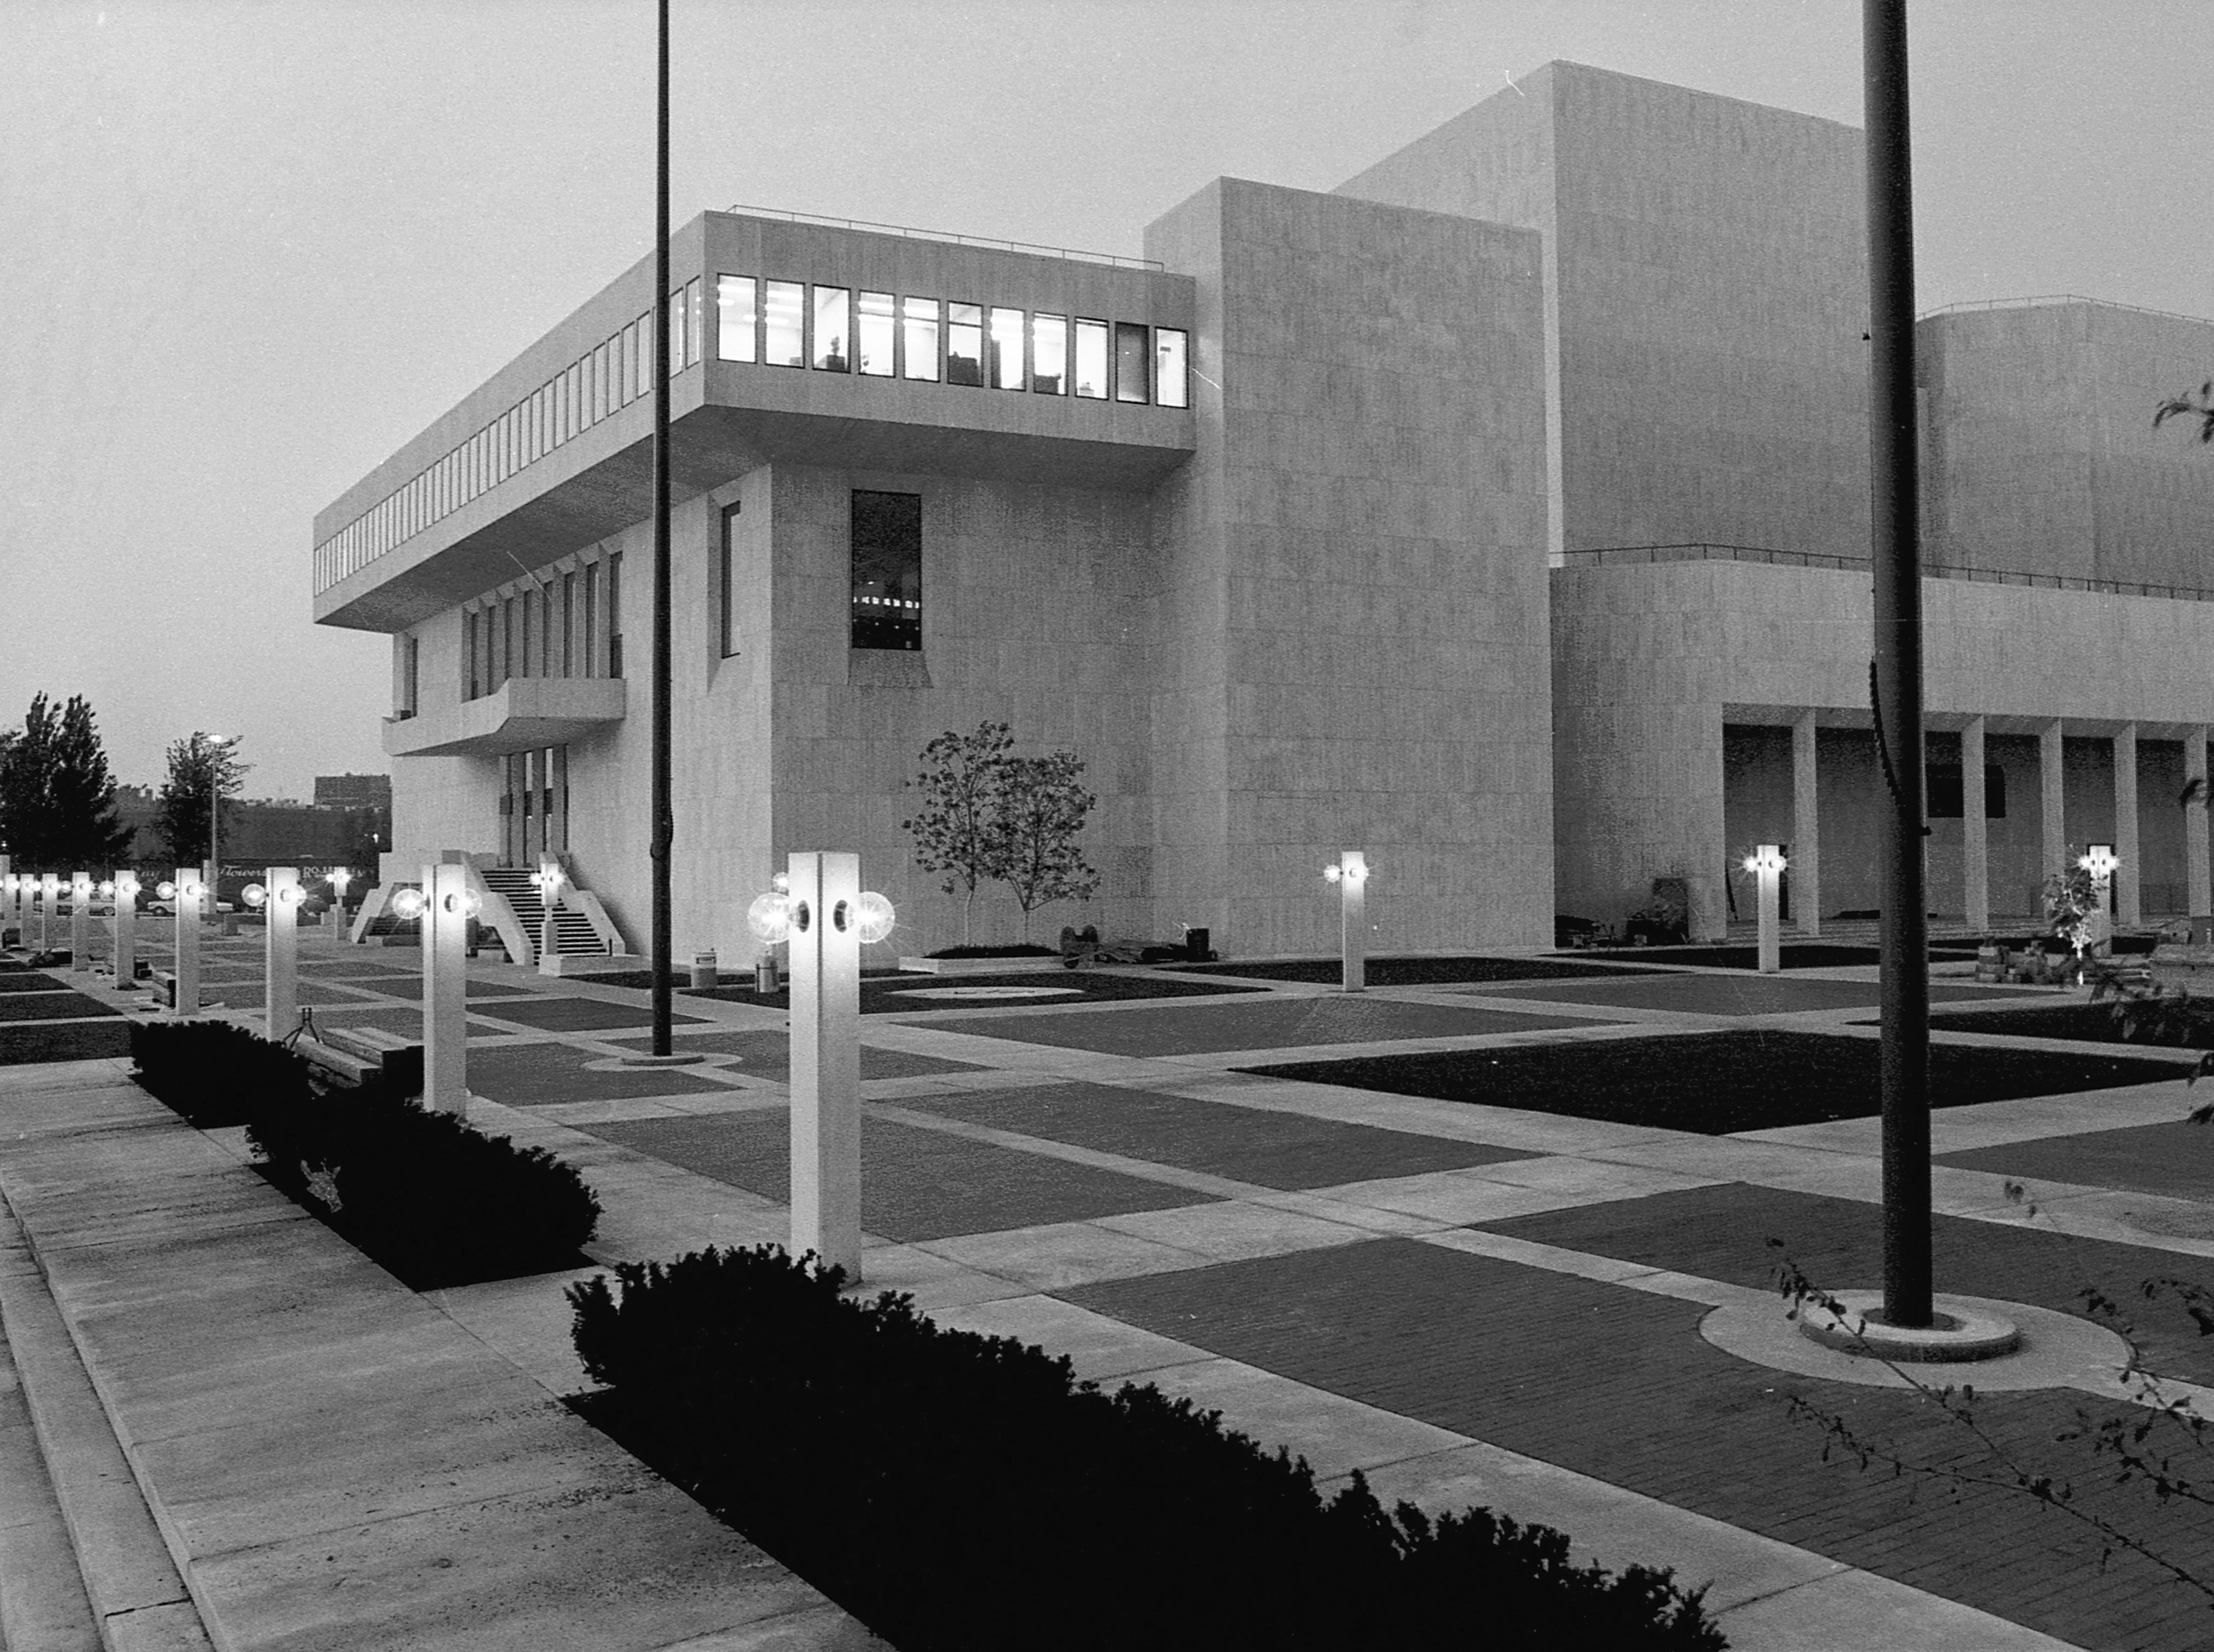 35mm film negative of a night shot of the new Milwaukee Performing Arts Center (now known as the Marcus Center for the Performing Arts) or PAC at 929 N. Water St. Construction began on June 27, 1966. This photo shows the southwest corner of the exterior.   Photo was filed 10/13/1969 Neg #69562 exterior, building, music, performance, stage, theater, Uihlein Hall, Todd Wehr hall, Peck Pavilion.